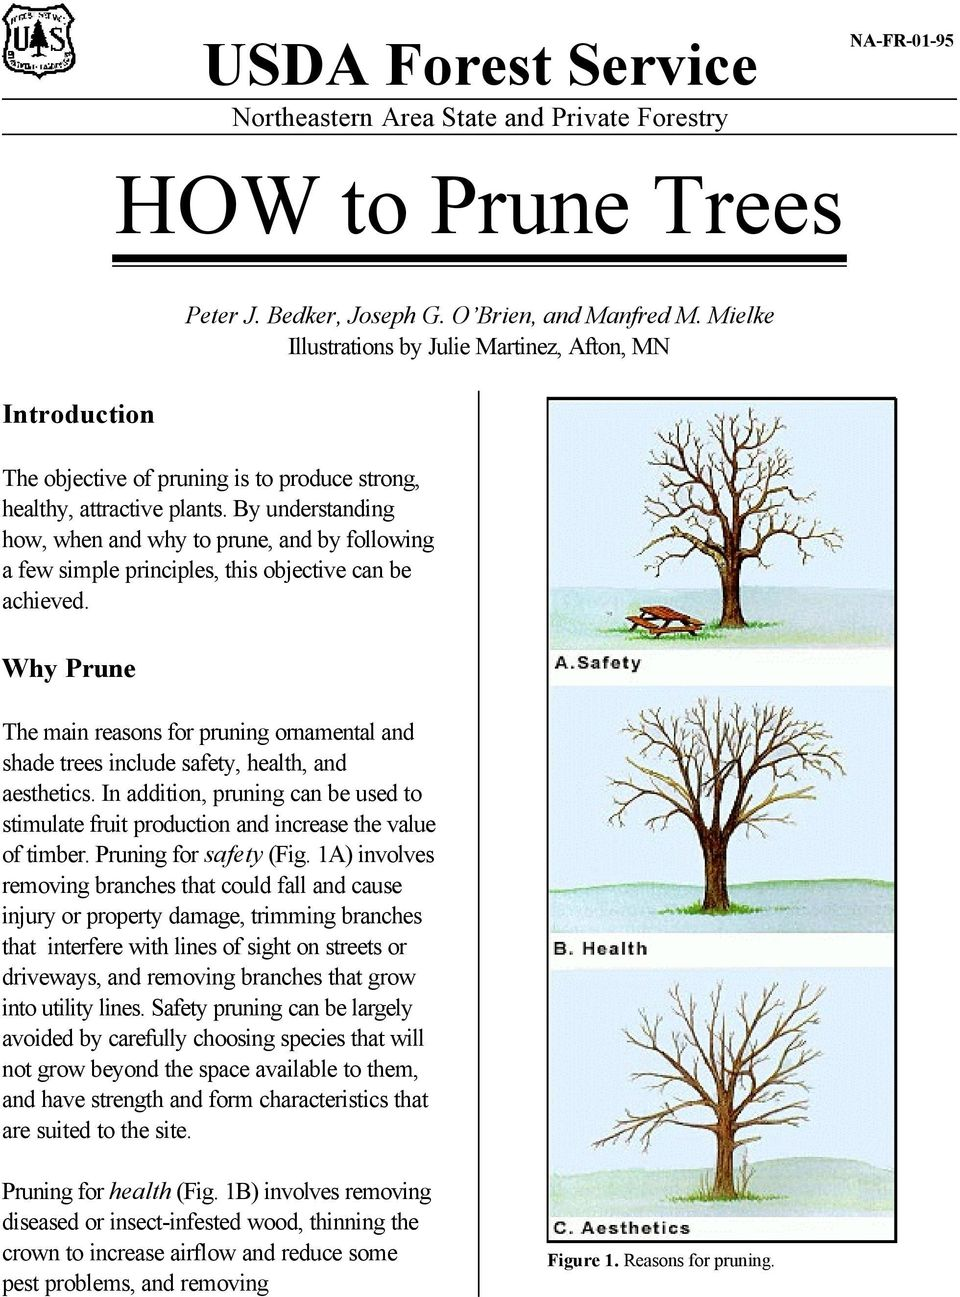 By understanding how, when and why to prune, and by following a few simple principles, this objective can be achieved.